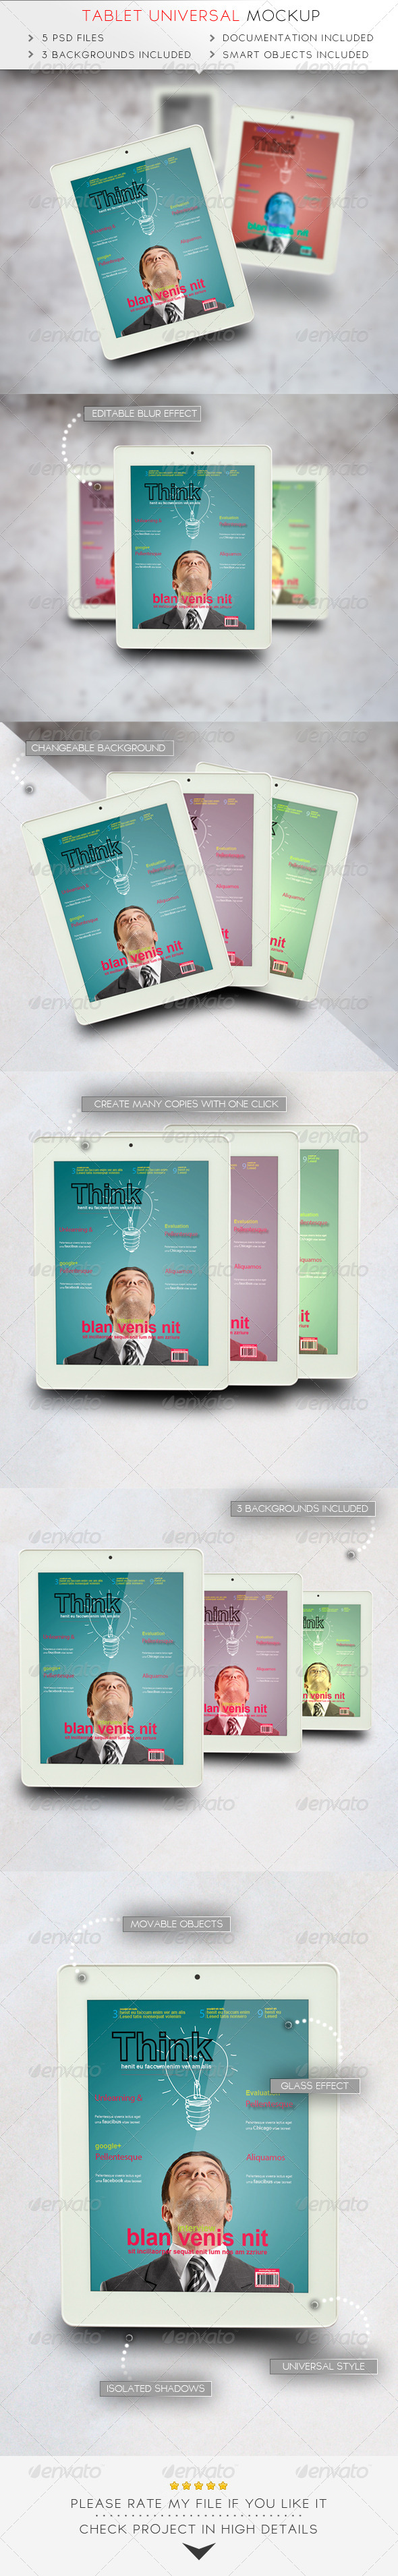 Tablet Universal Mockup - Mobile Displays